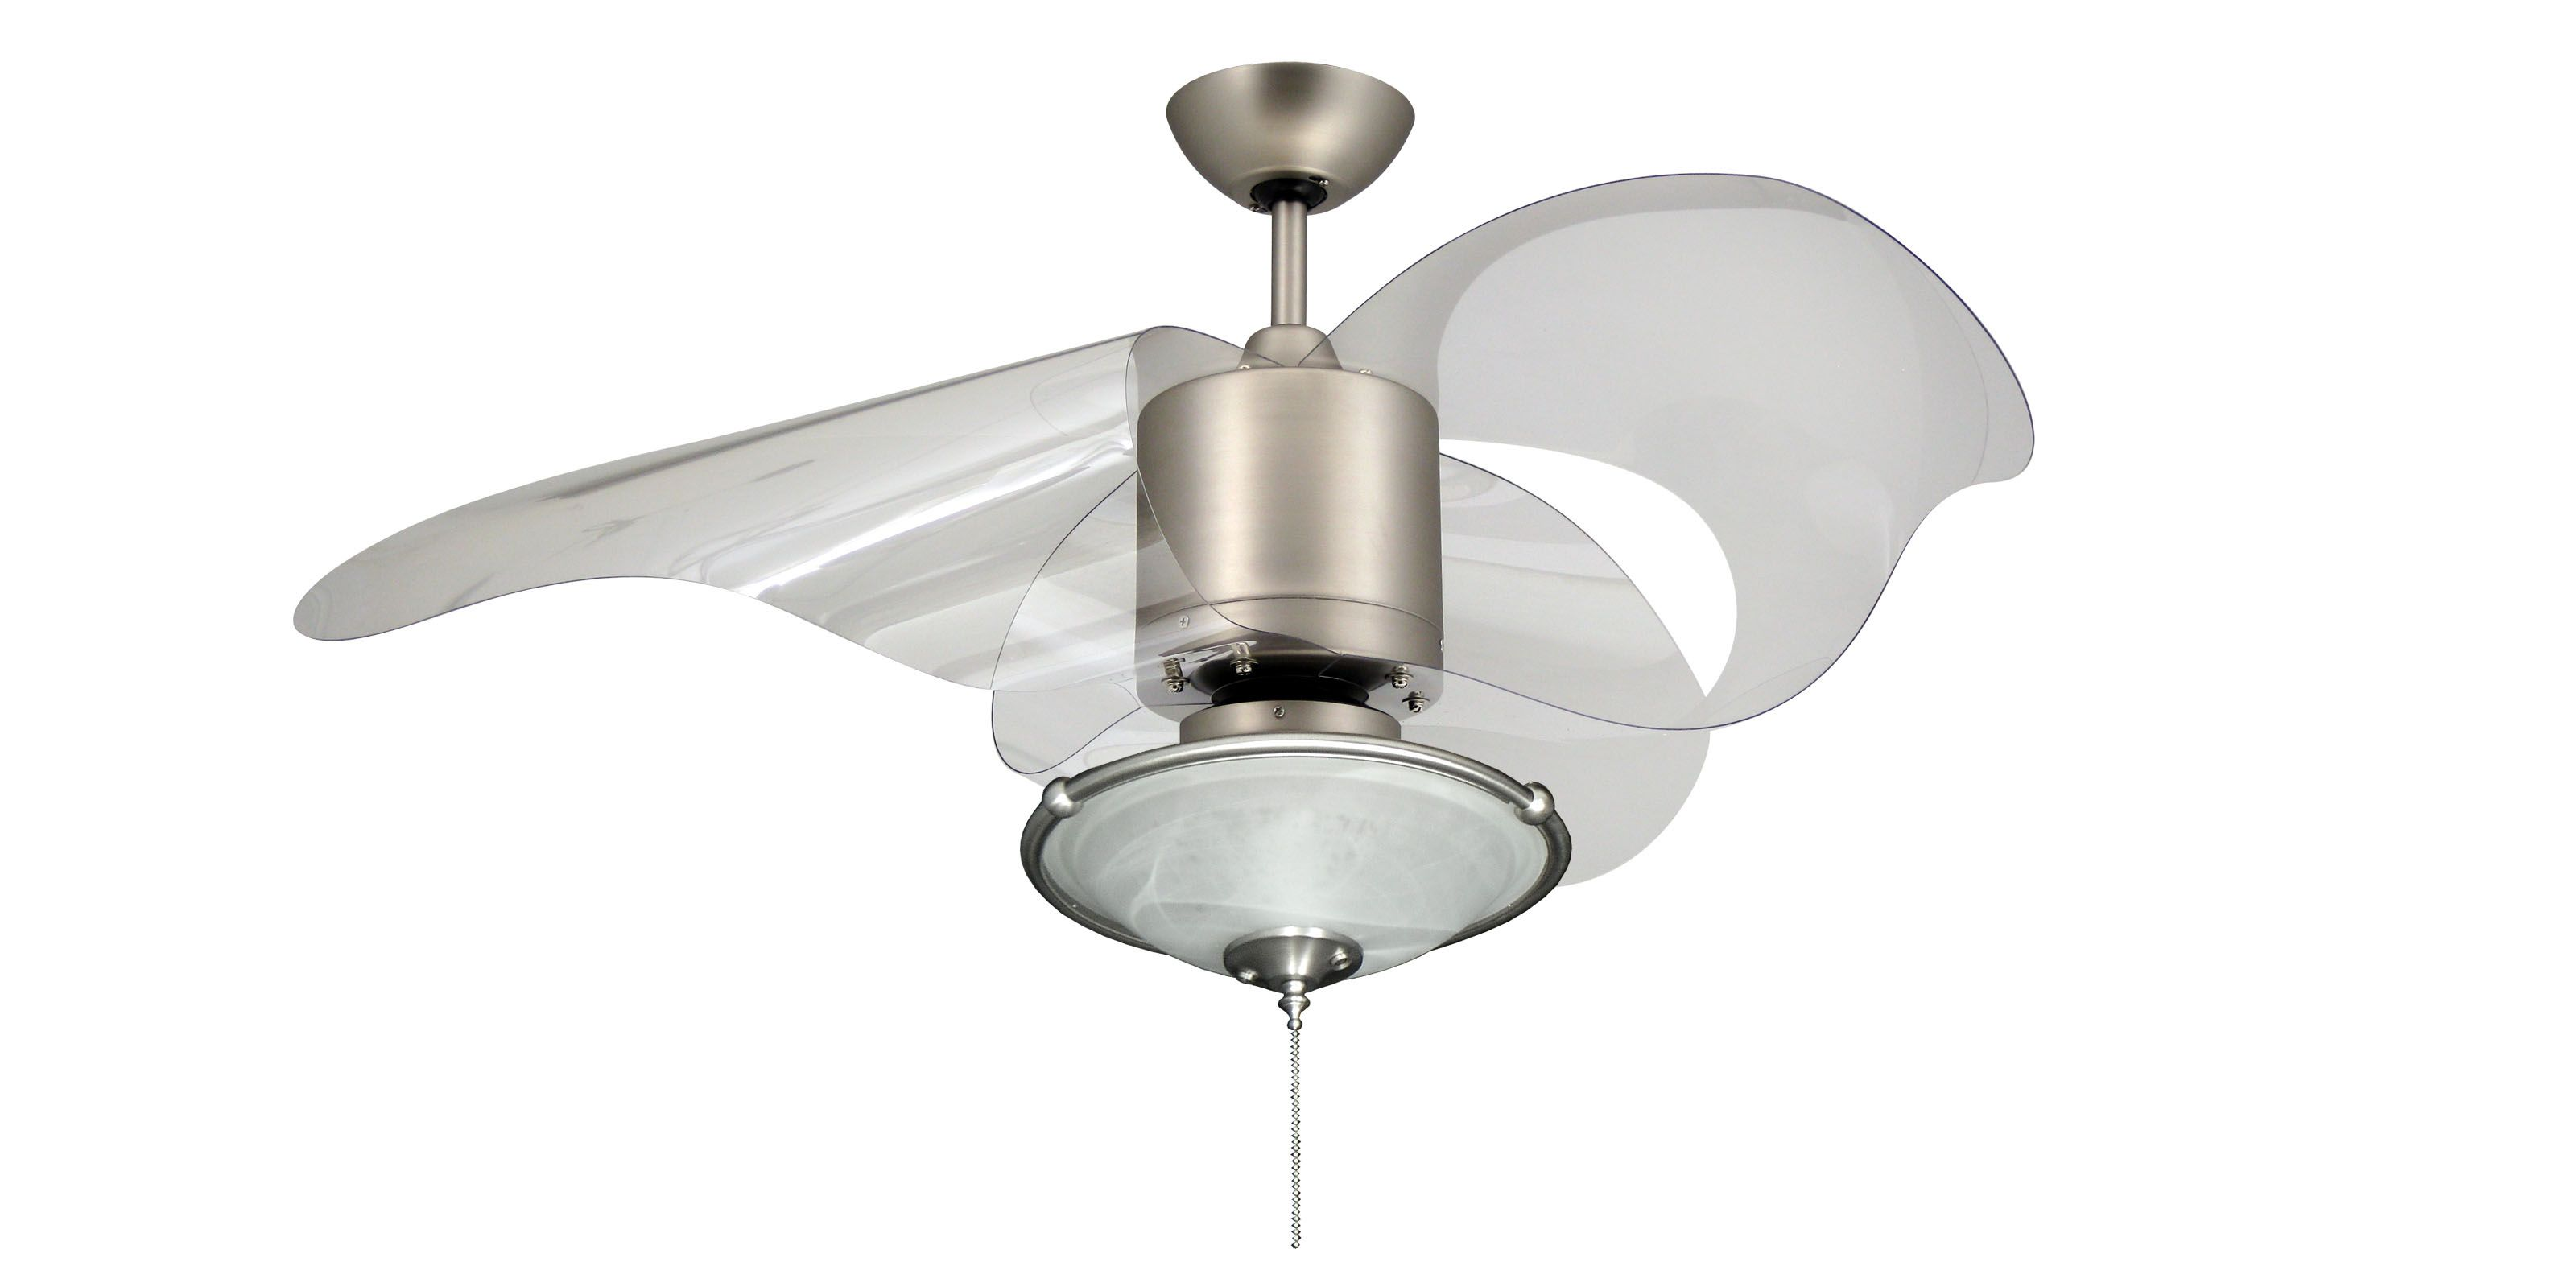 The L A 44in ceiling fan in Satin Steel and 173 Light